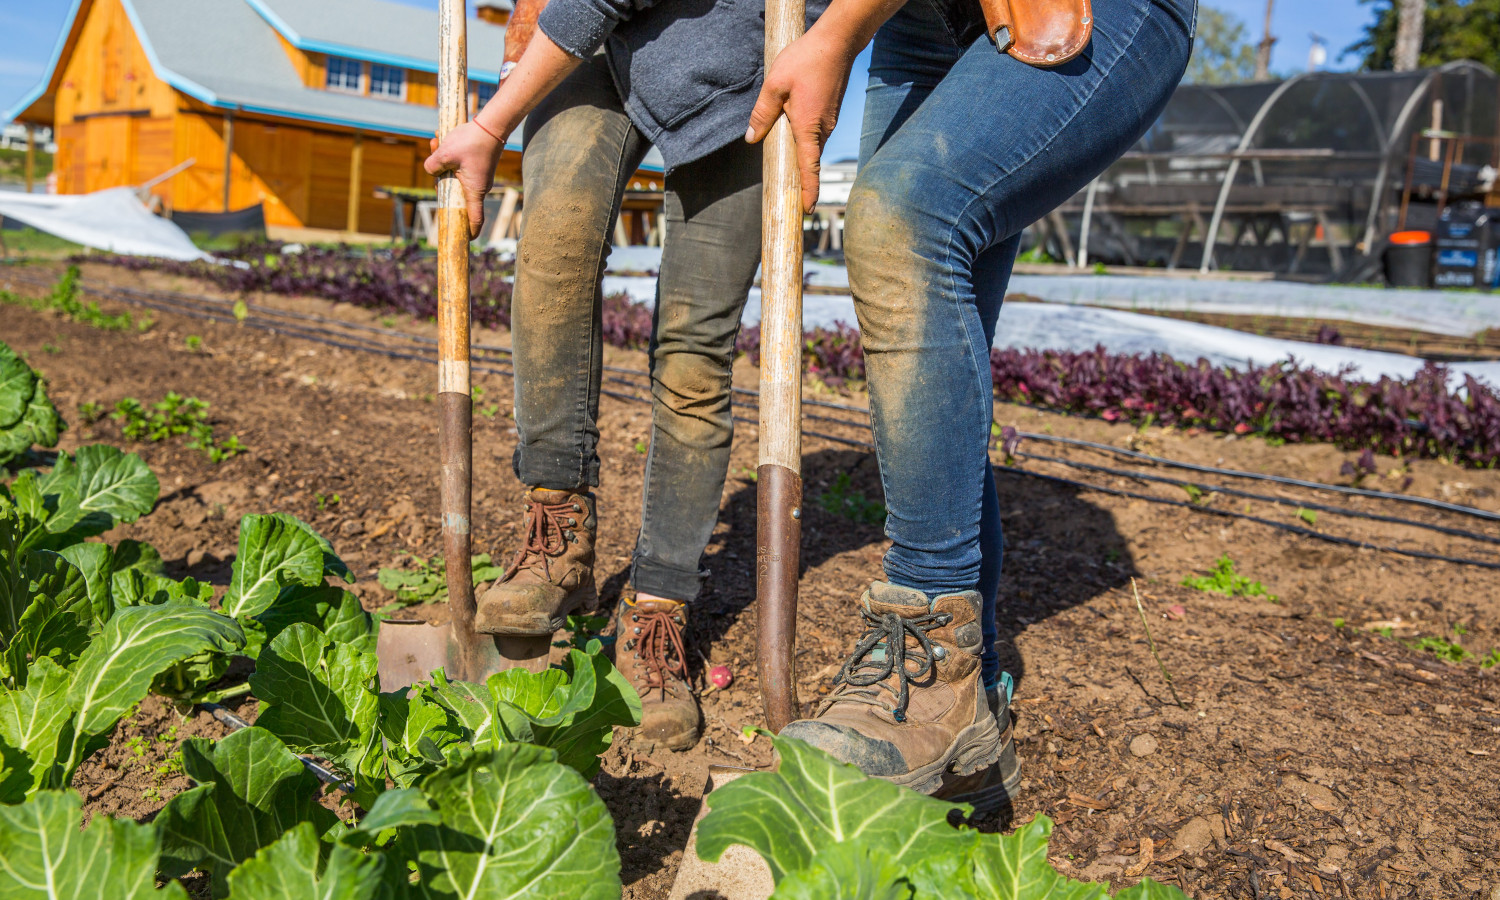 Coastal Roots Farm's new docu-film shows how the farm uses holistic, organic farming rooted in Jewish values to provide for the community and connect with the earth.